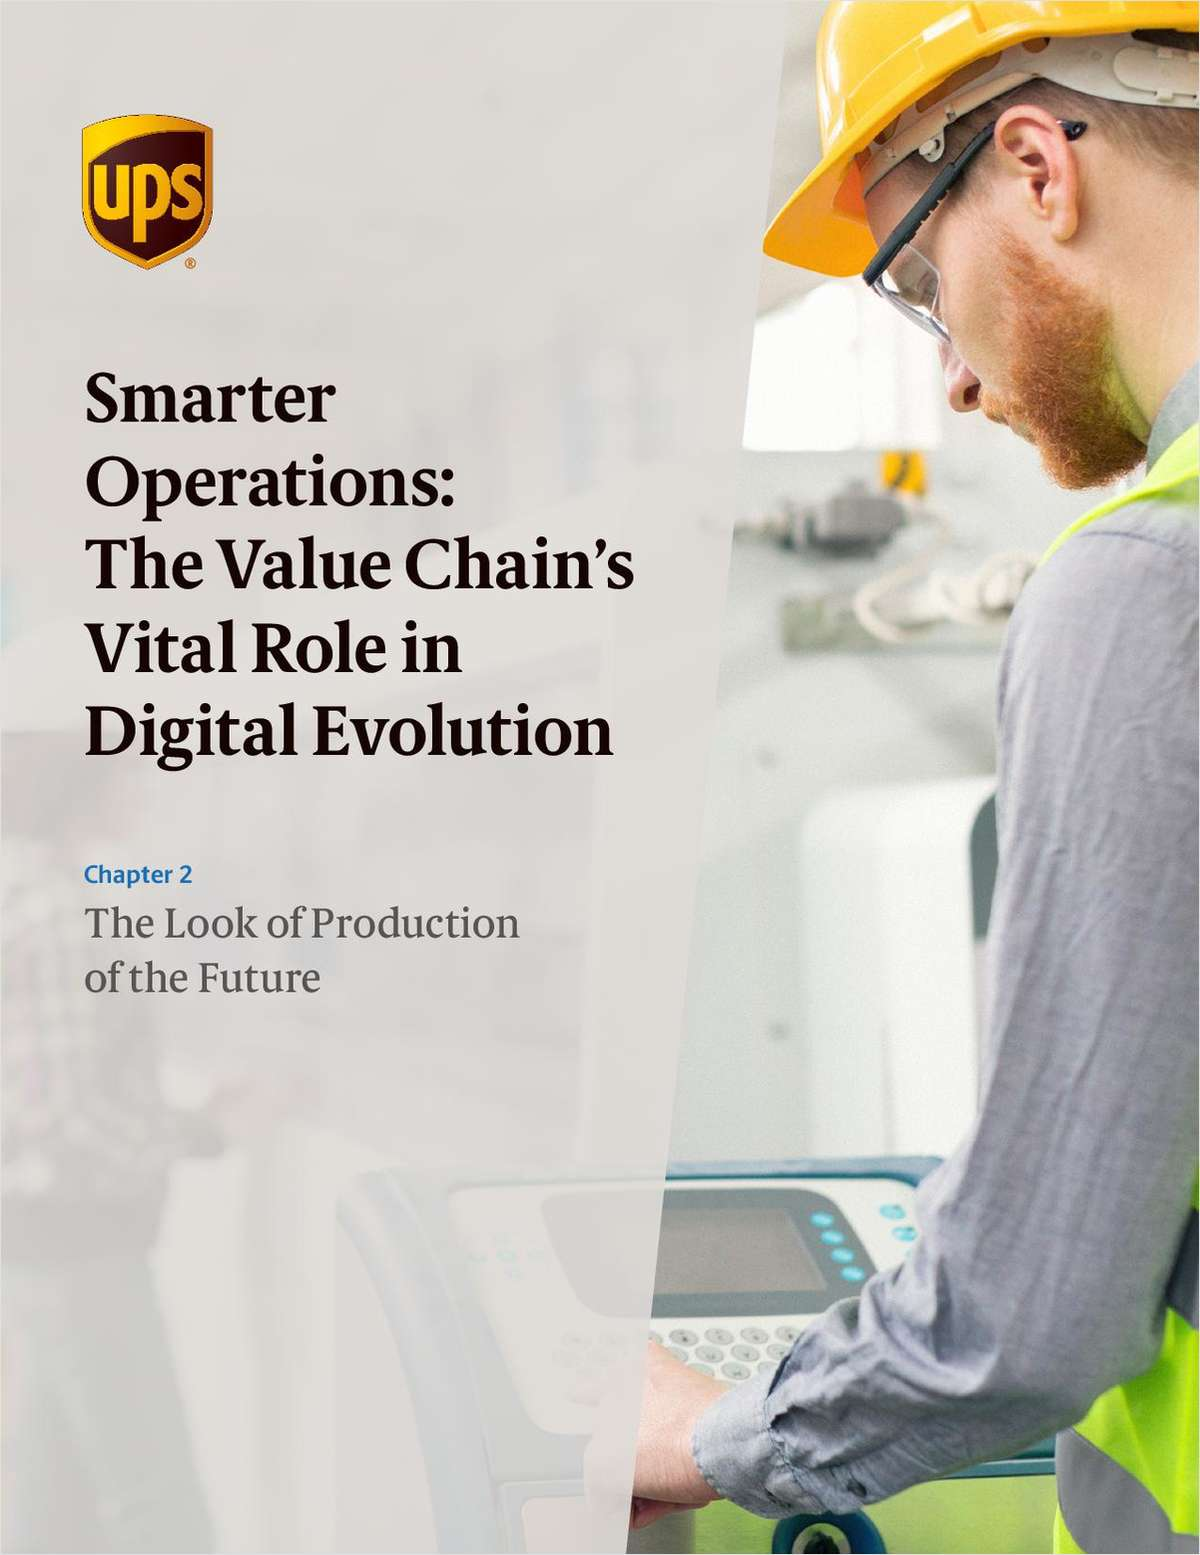 The Look of Production of the Future